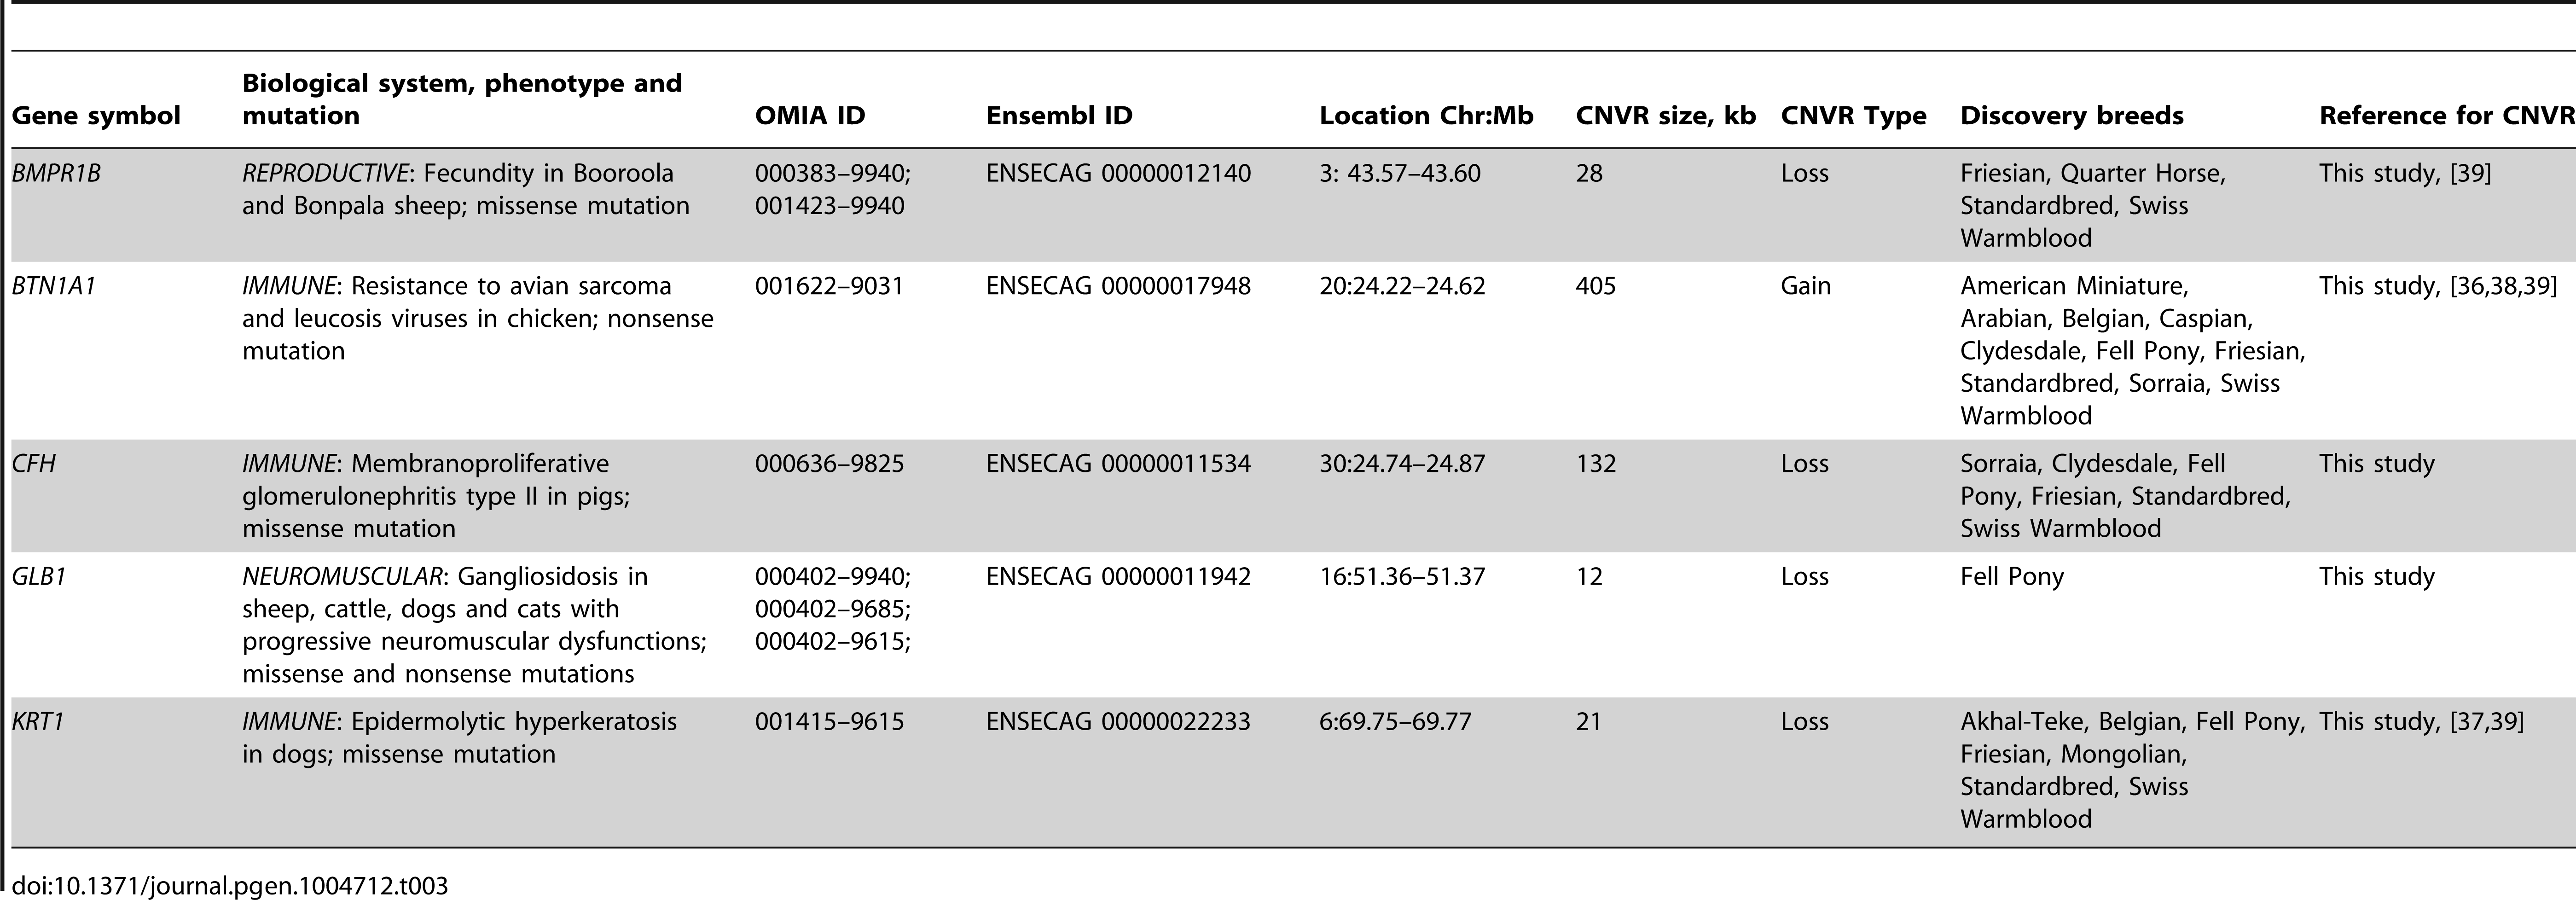 "Equine copy number variable genes with known mammalian phenotypes (OMIA; <a href=""http://omia.angis.org.au/home/"">http://omia.angis.org.au/home/</a>)."